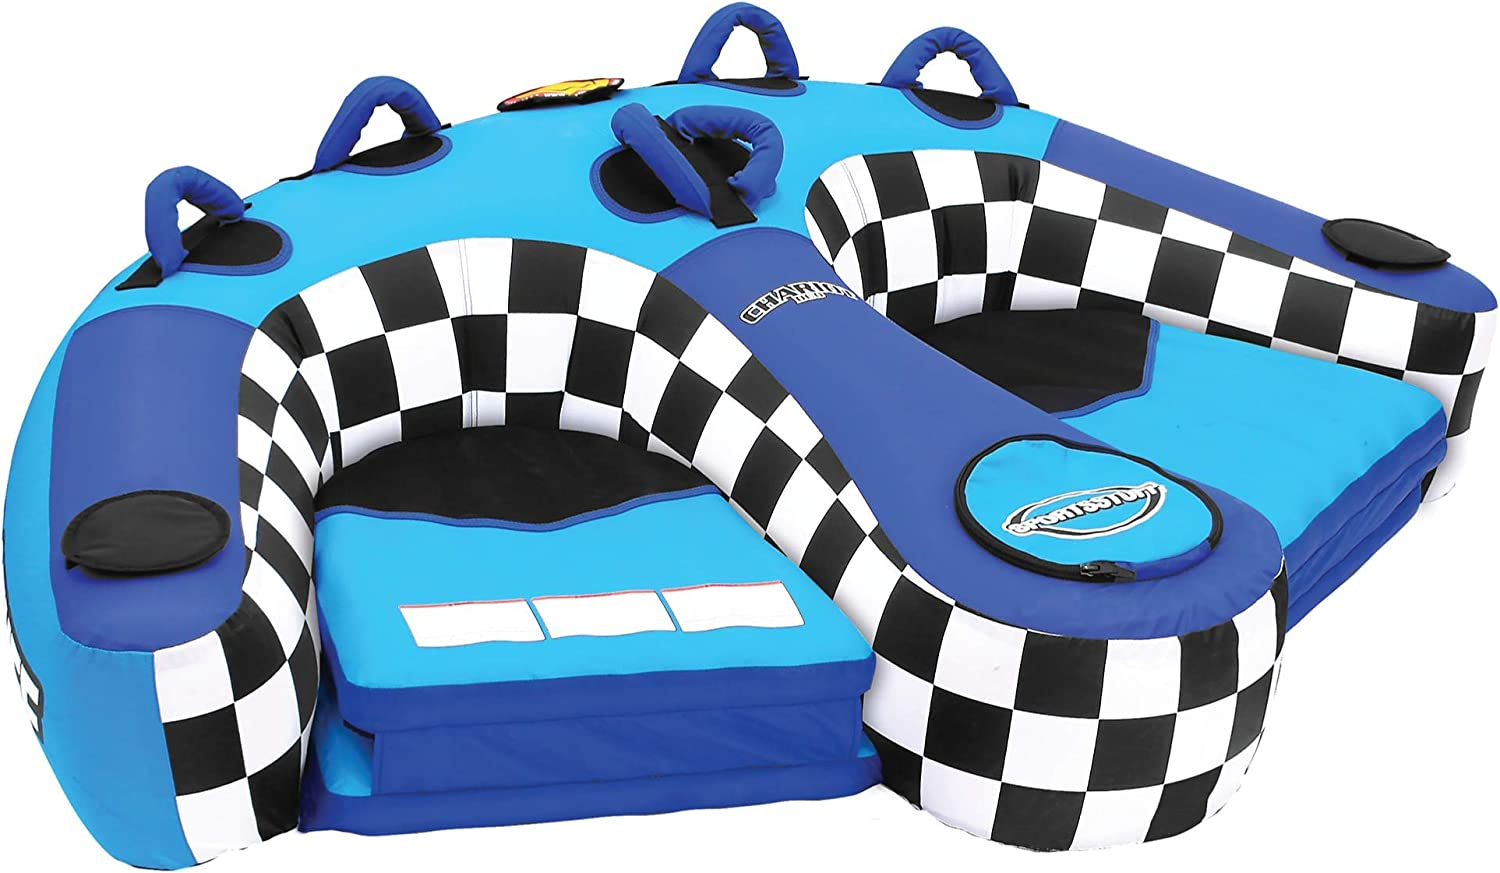 Sportsstuff Chariot Duo   1-2 Rider Towable Tube for Boating